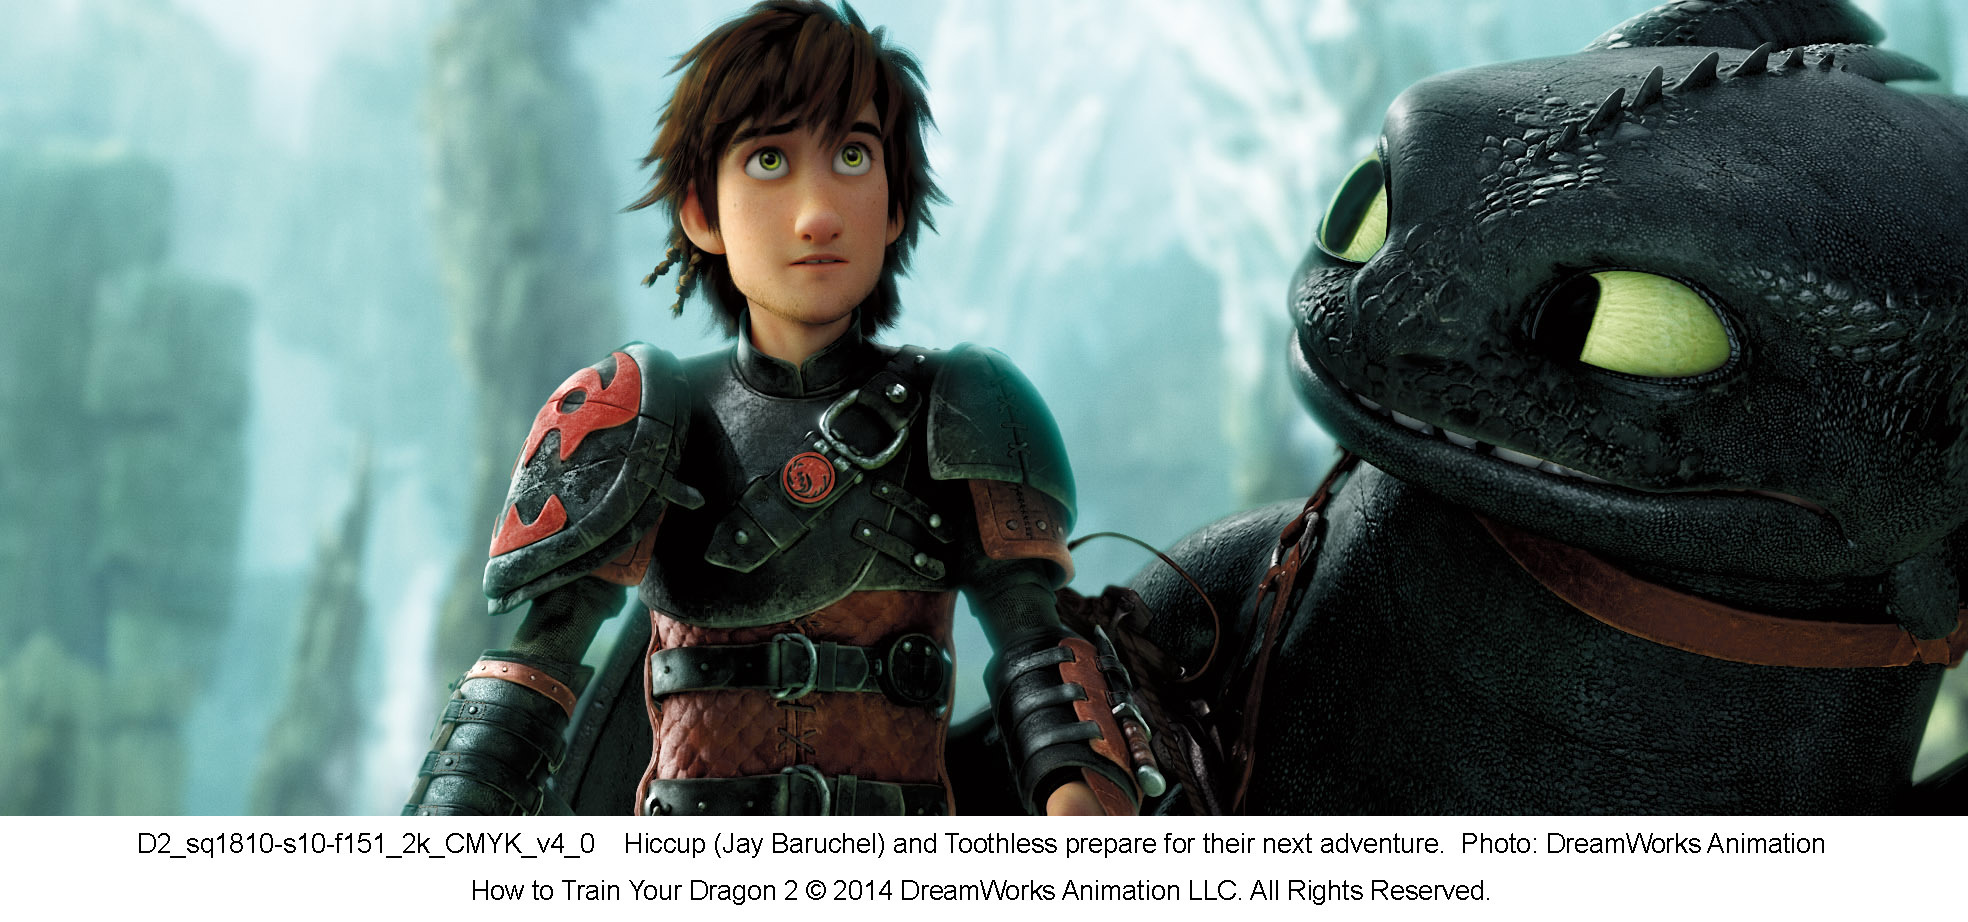 How to Train Your Dragon 11 (11014)